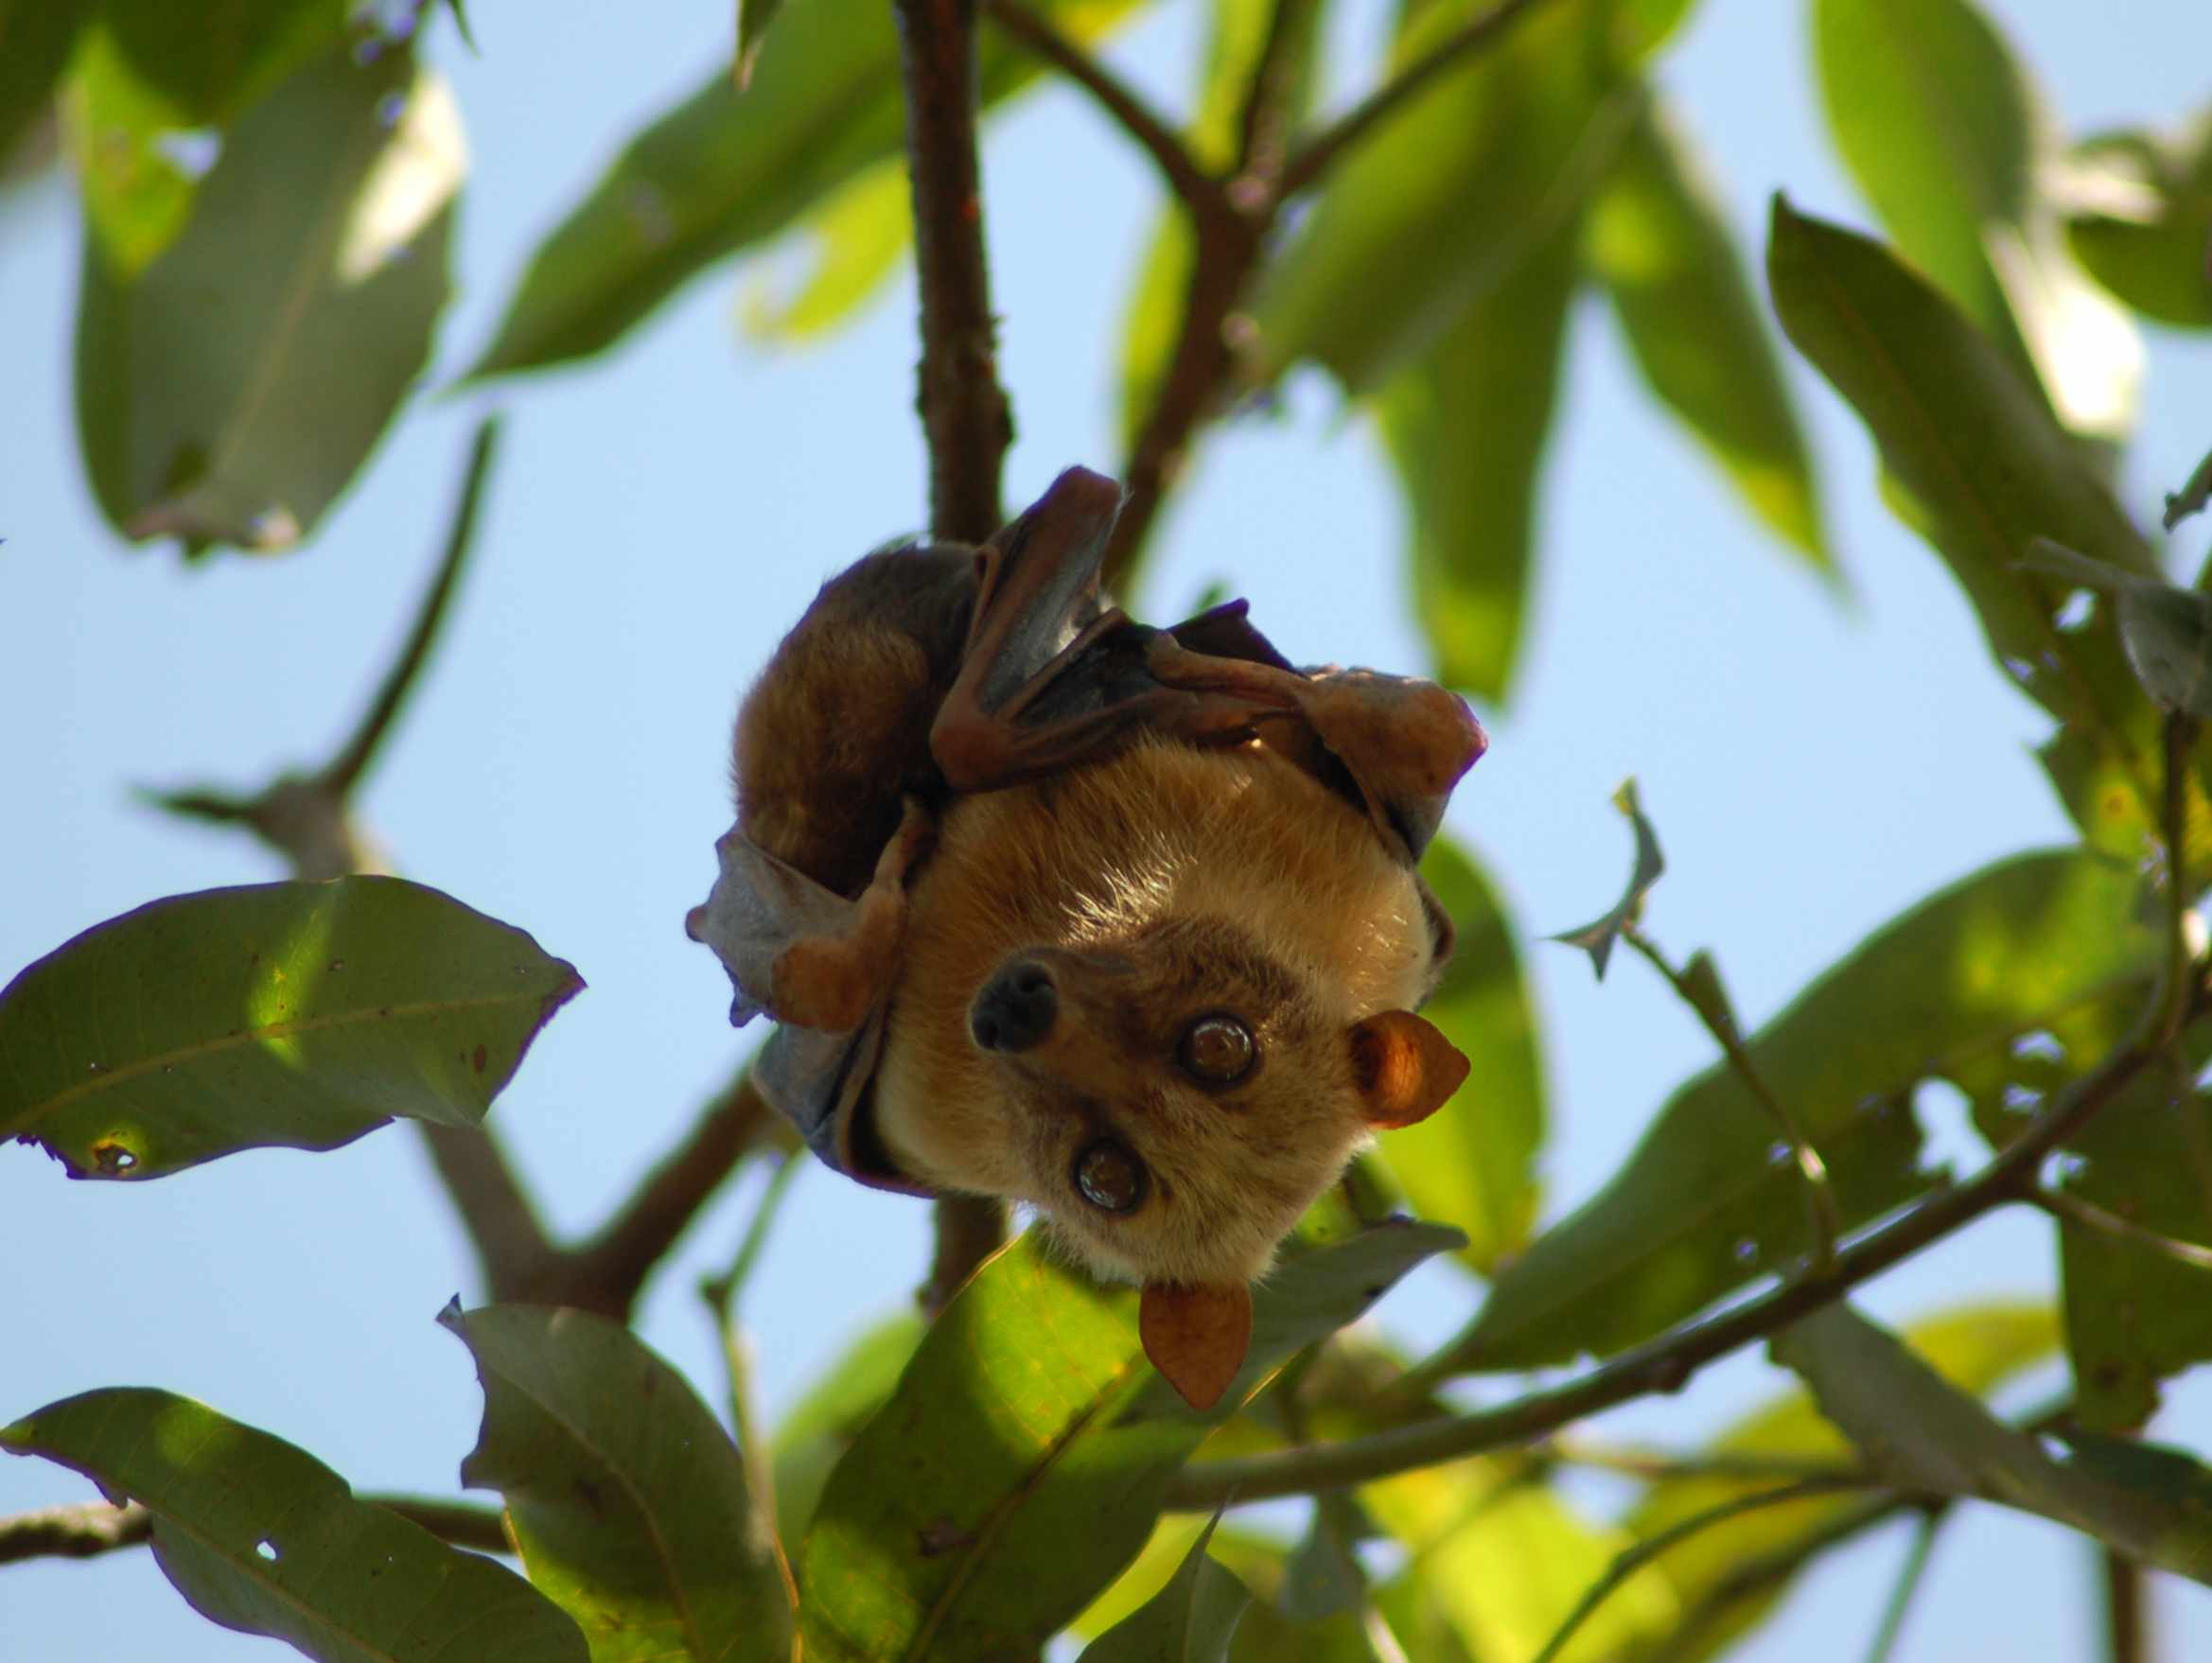 A golden-furred flying fox hangs from a tree branch